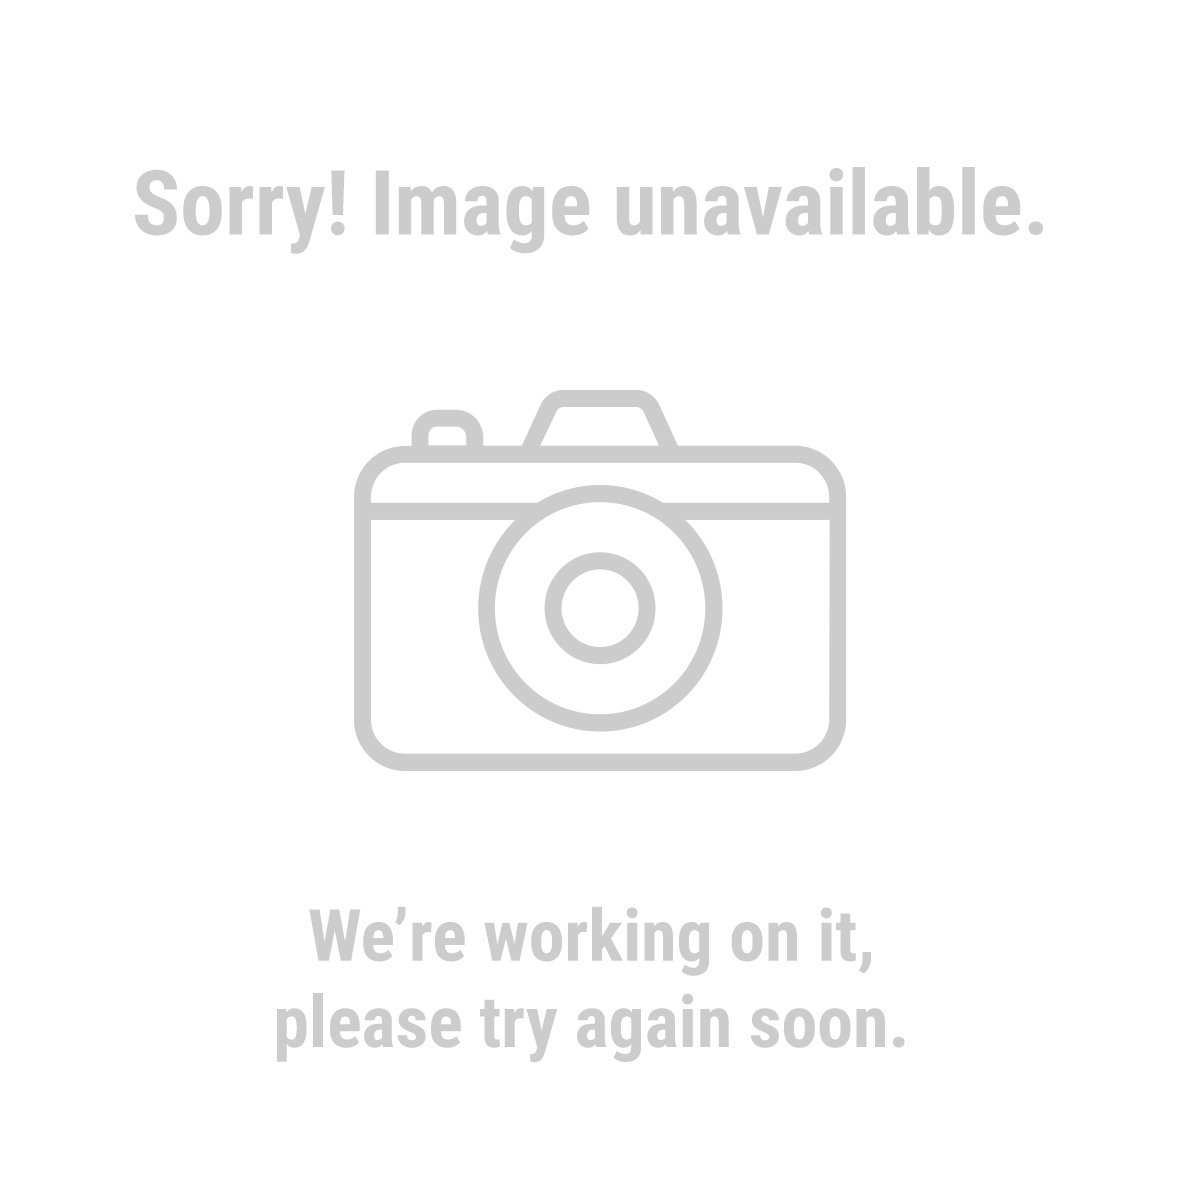 Motorcycle Ramps Harbor Freight Motorcycle Review And Galleries